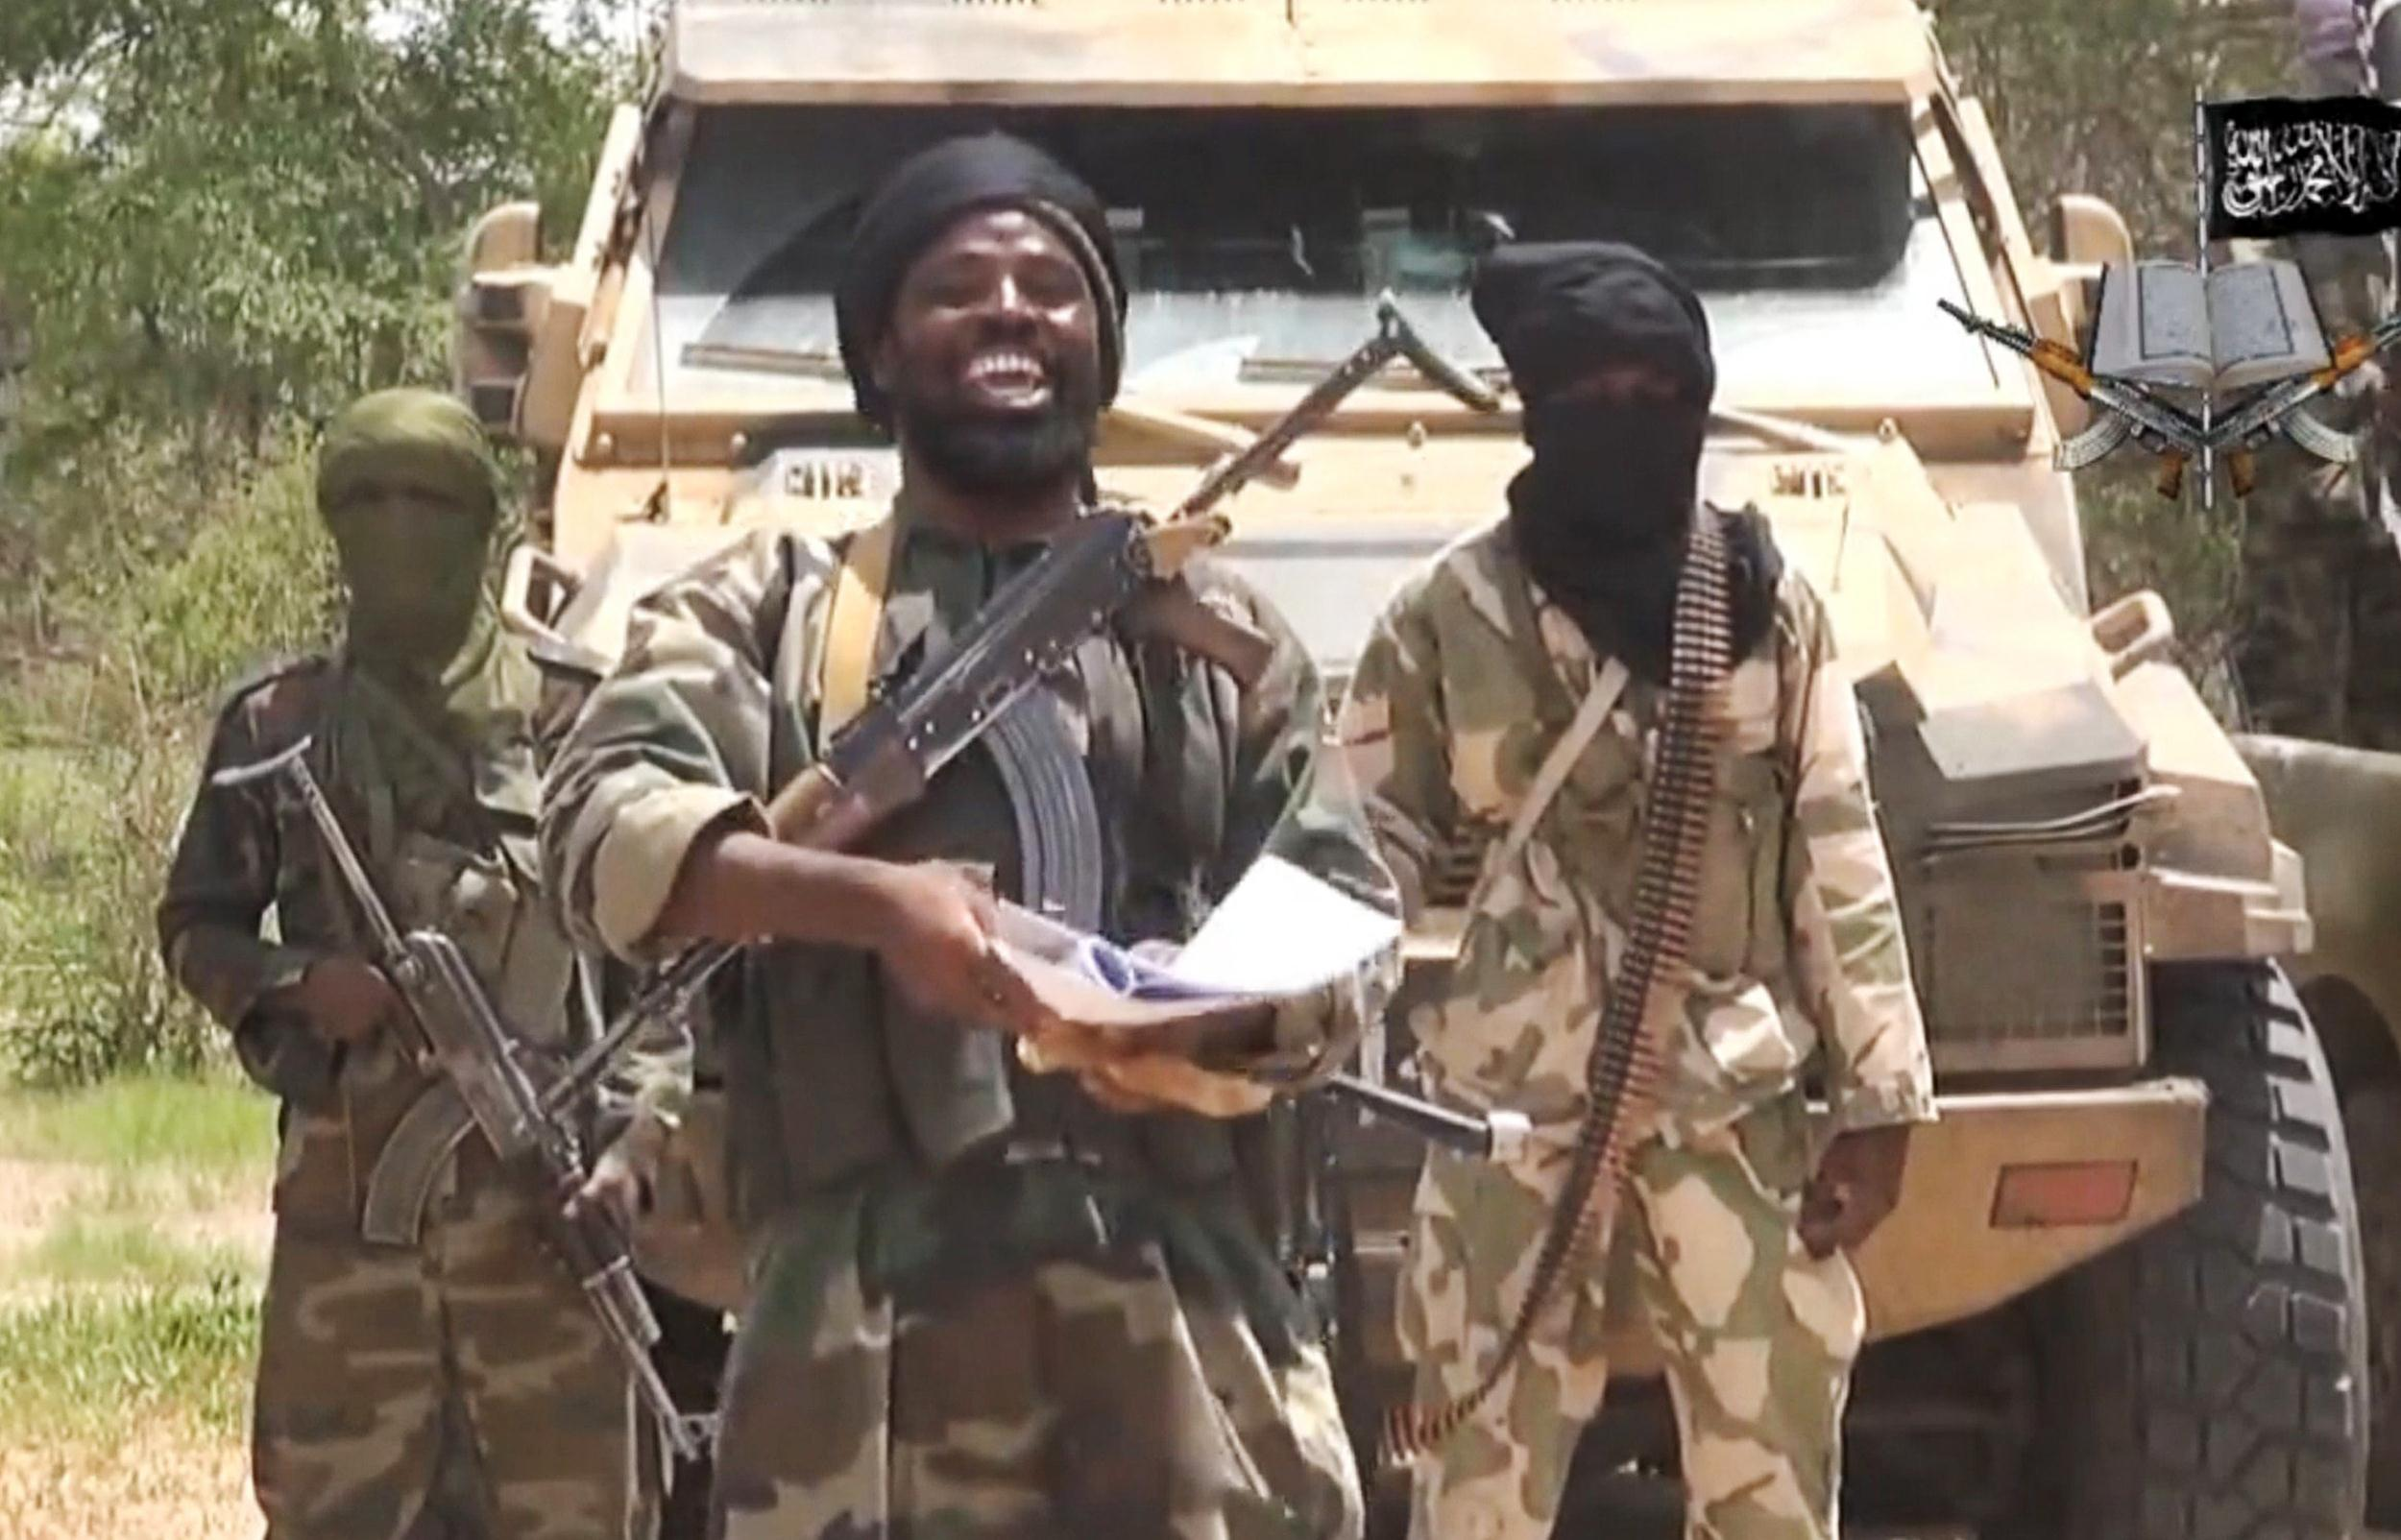 Image: Leader of the Nigerian Islamist extremist group Boko Haram, Abubakar Shekau